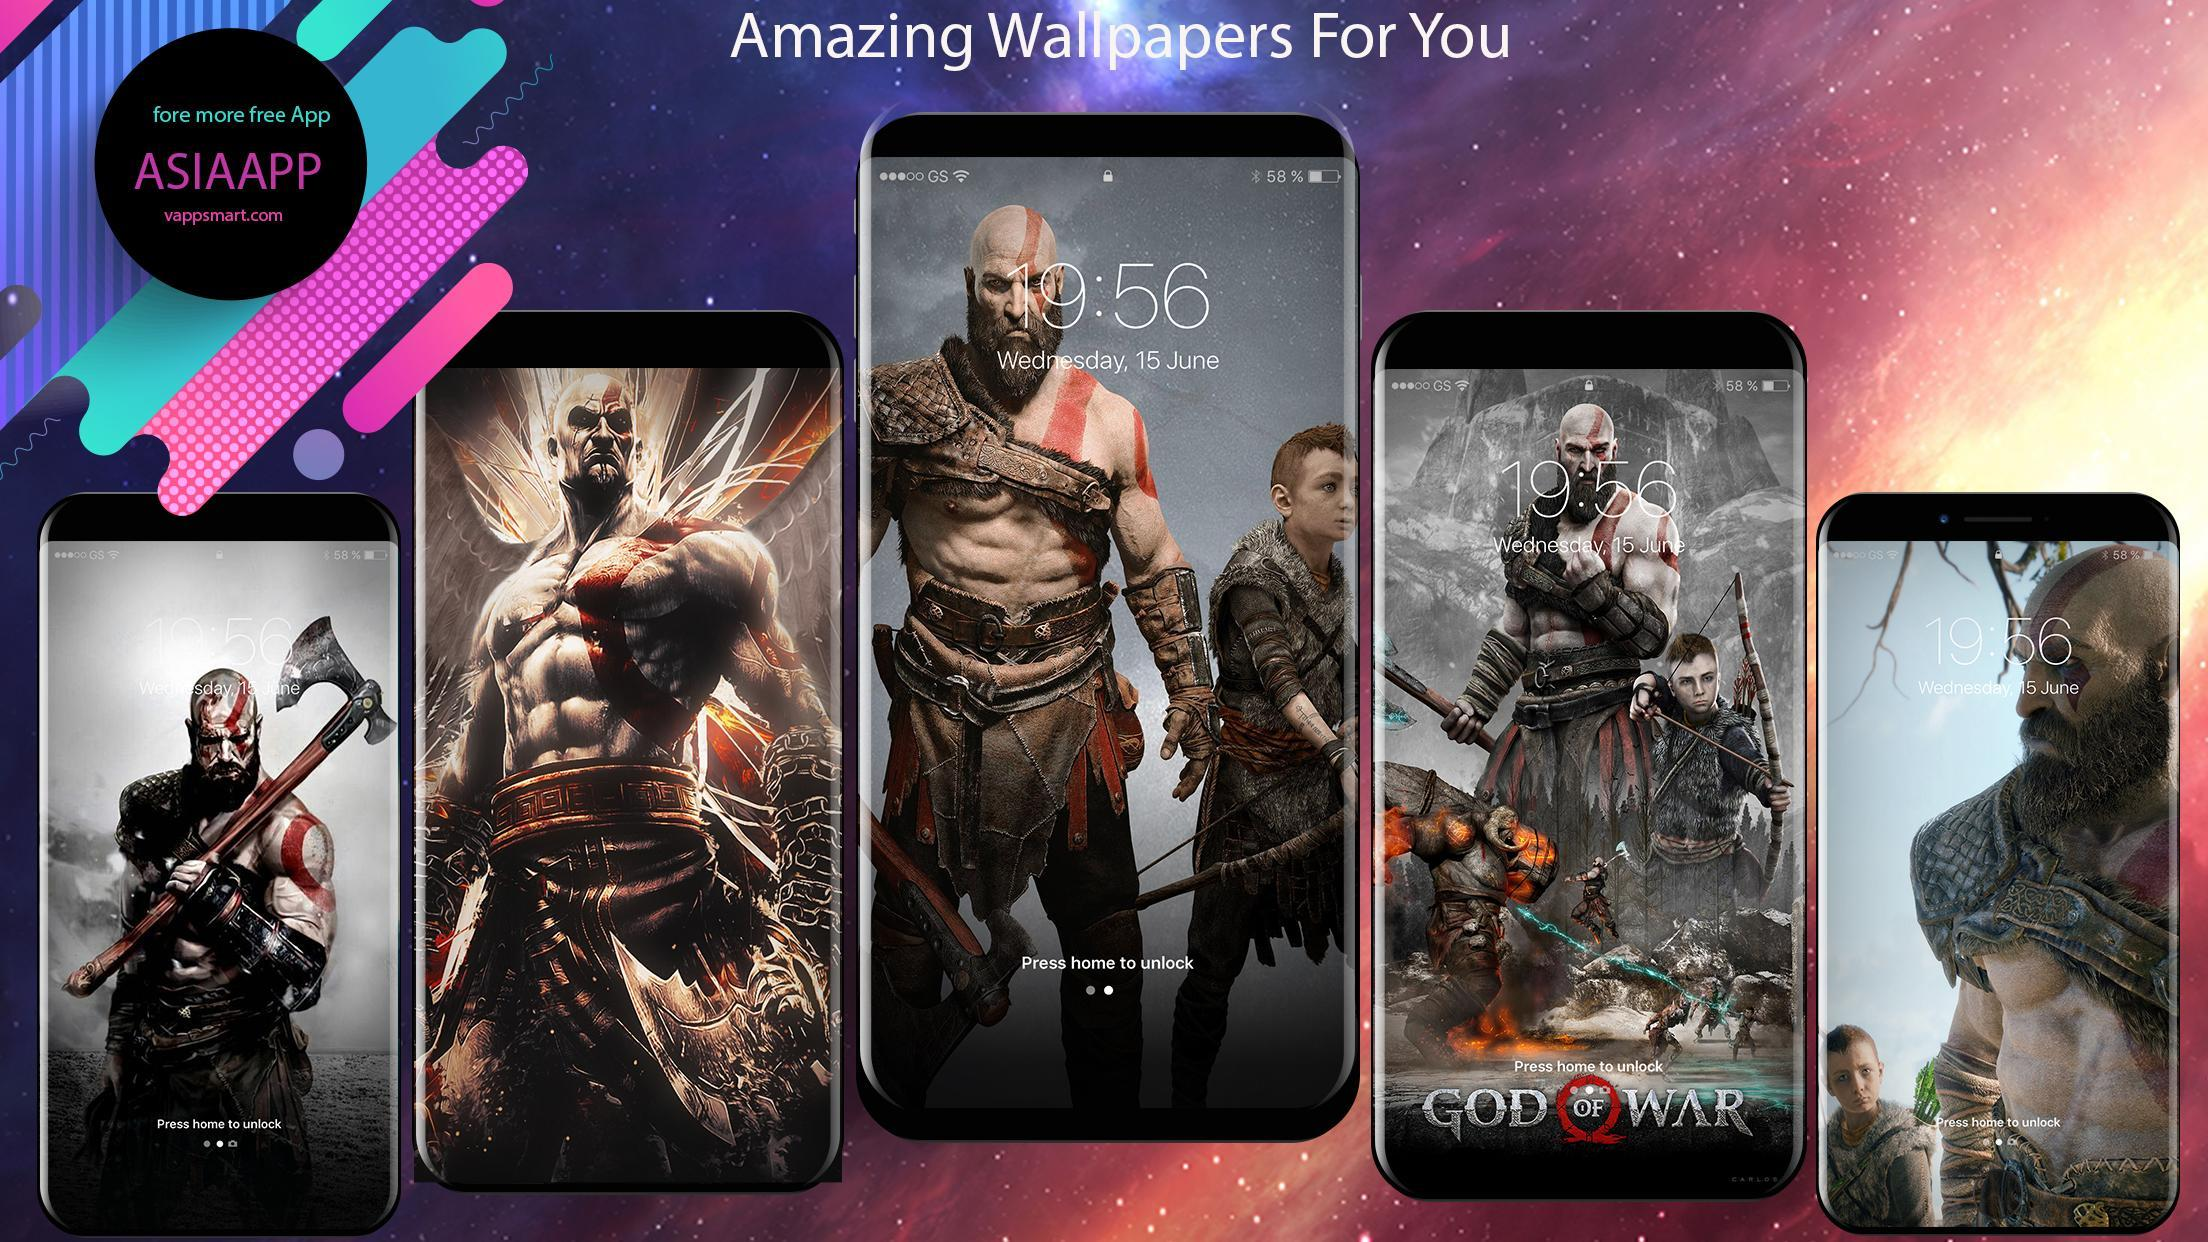 God Of War Wallpapers Backgrounds Hd 4k For Android Apk Download